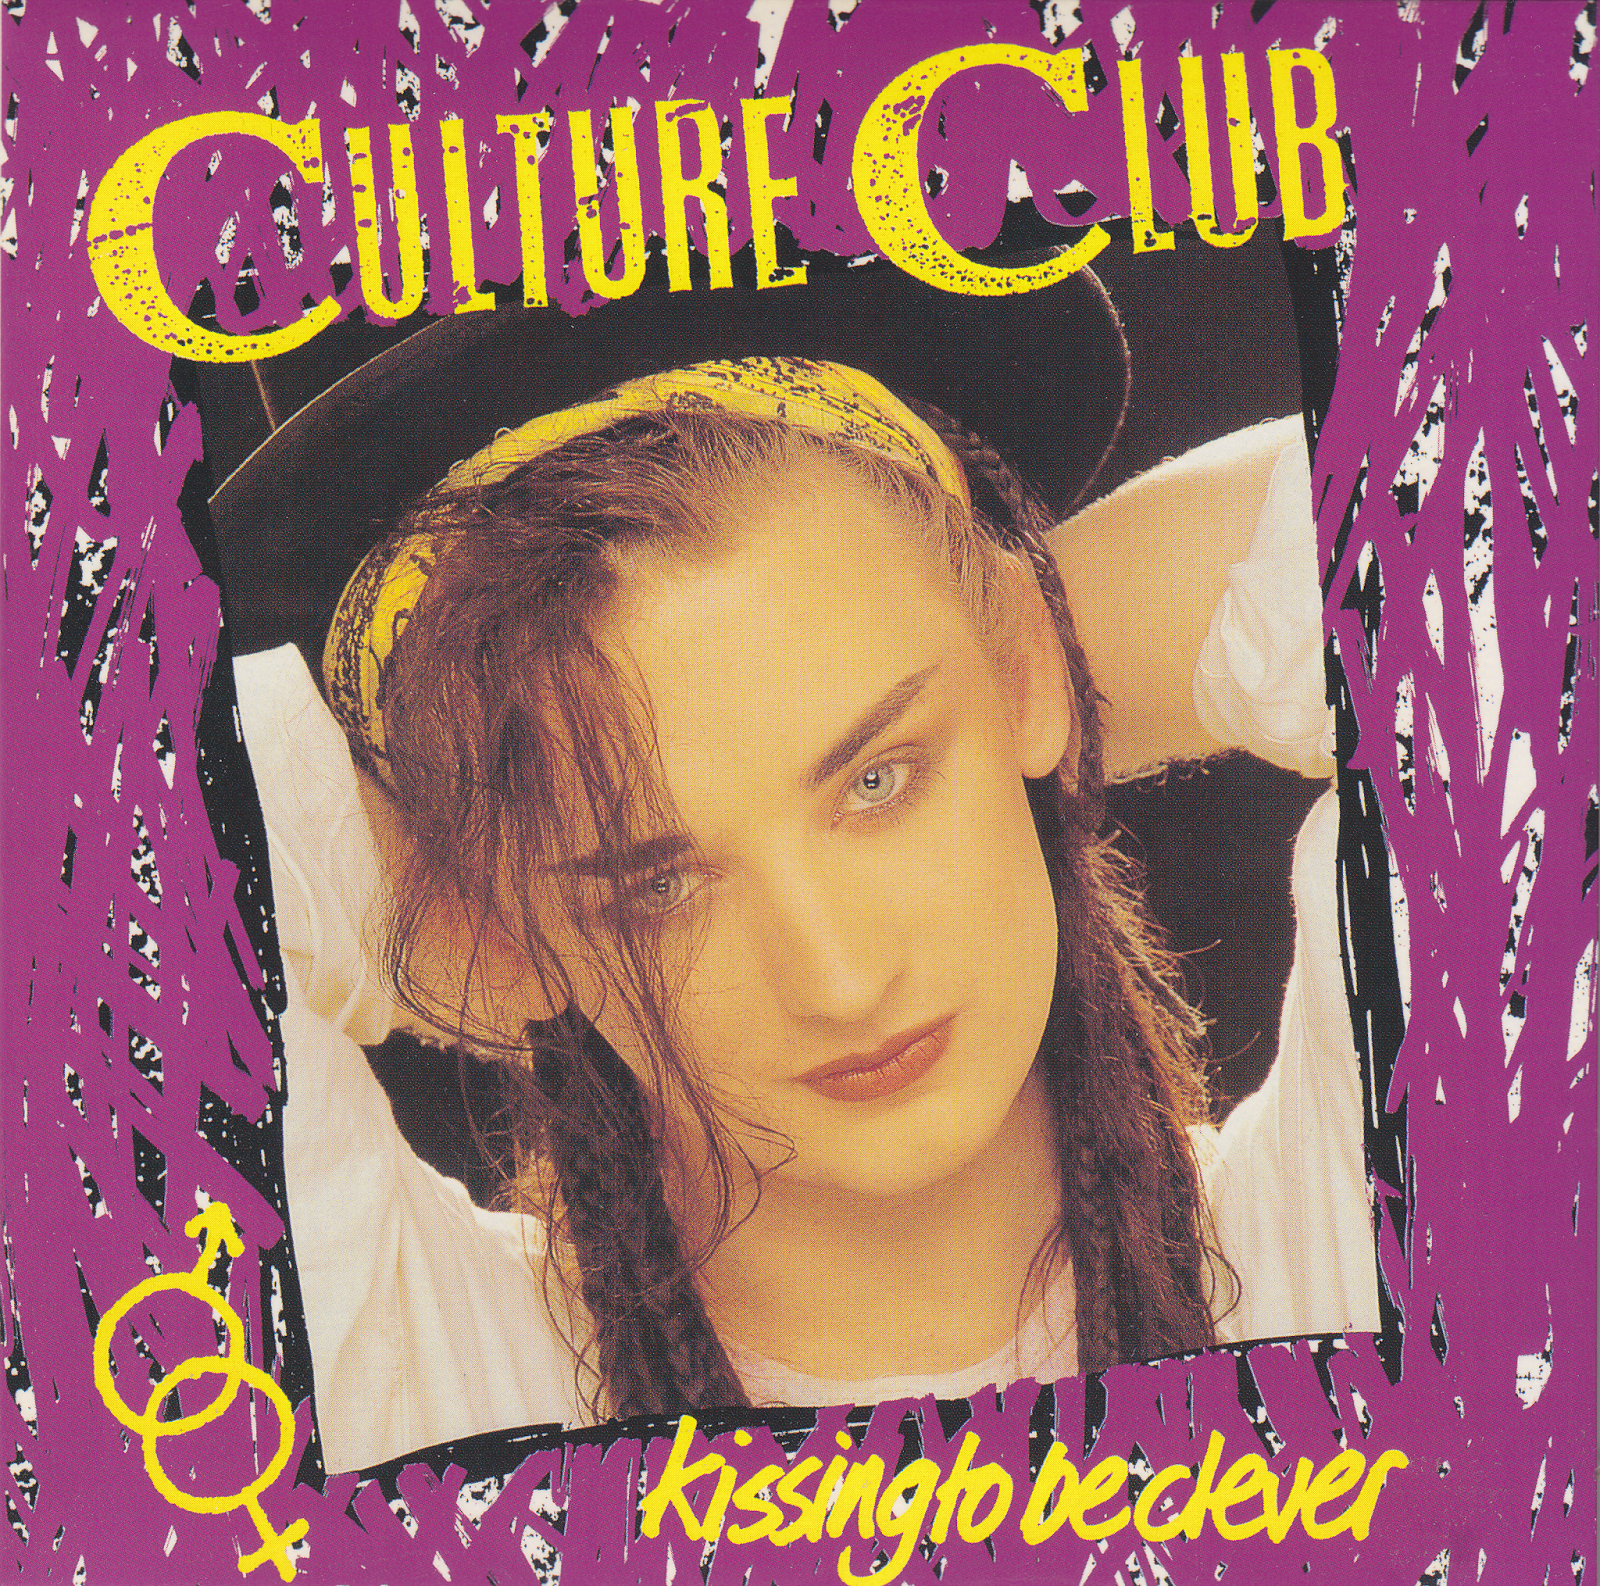 CULTURE CLUB   Kissing to Be Clever, 1982, Steve Levine, 33:35